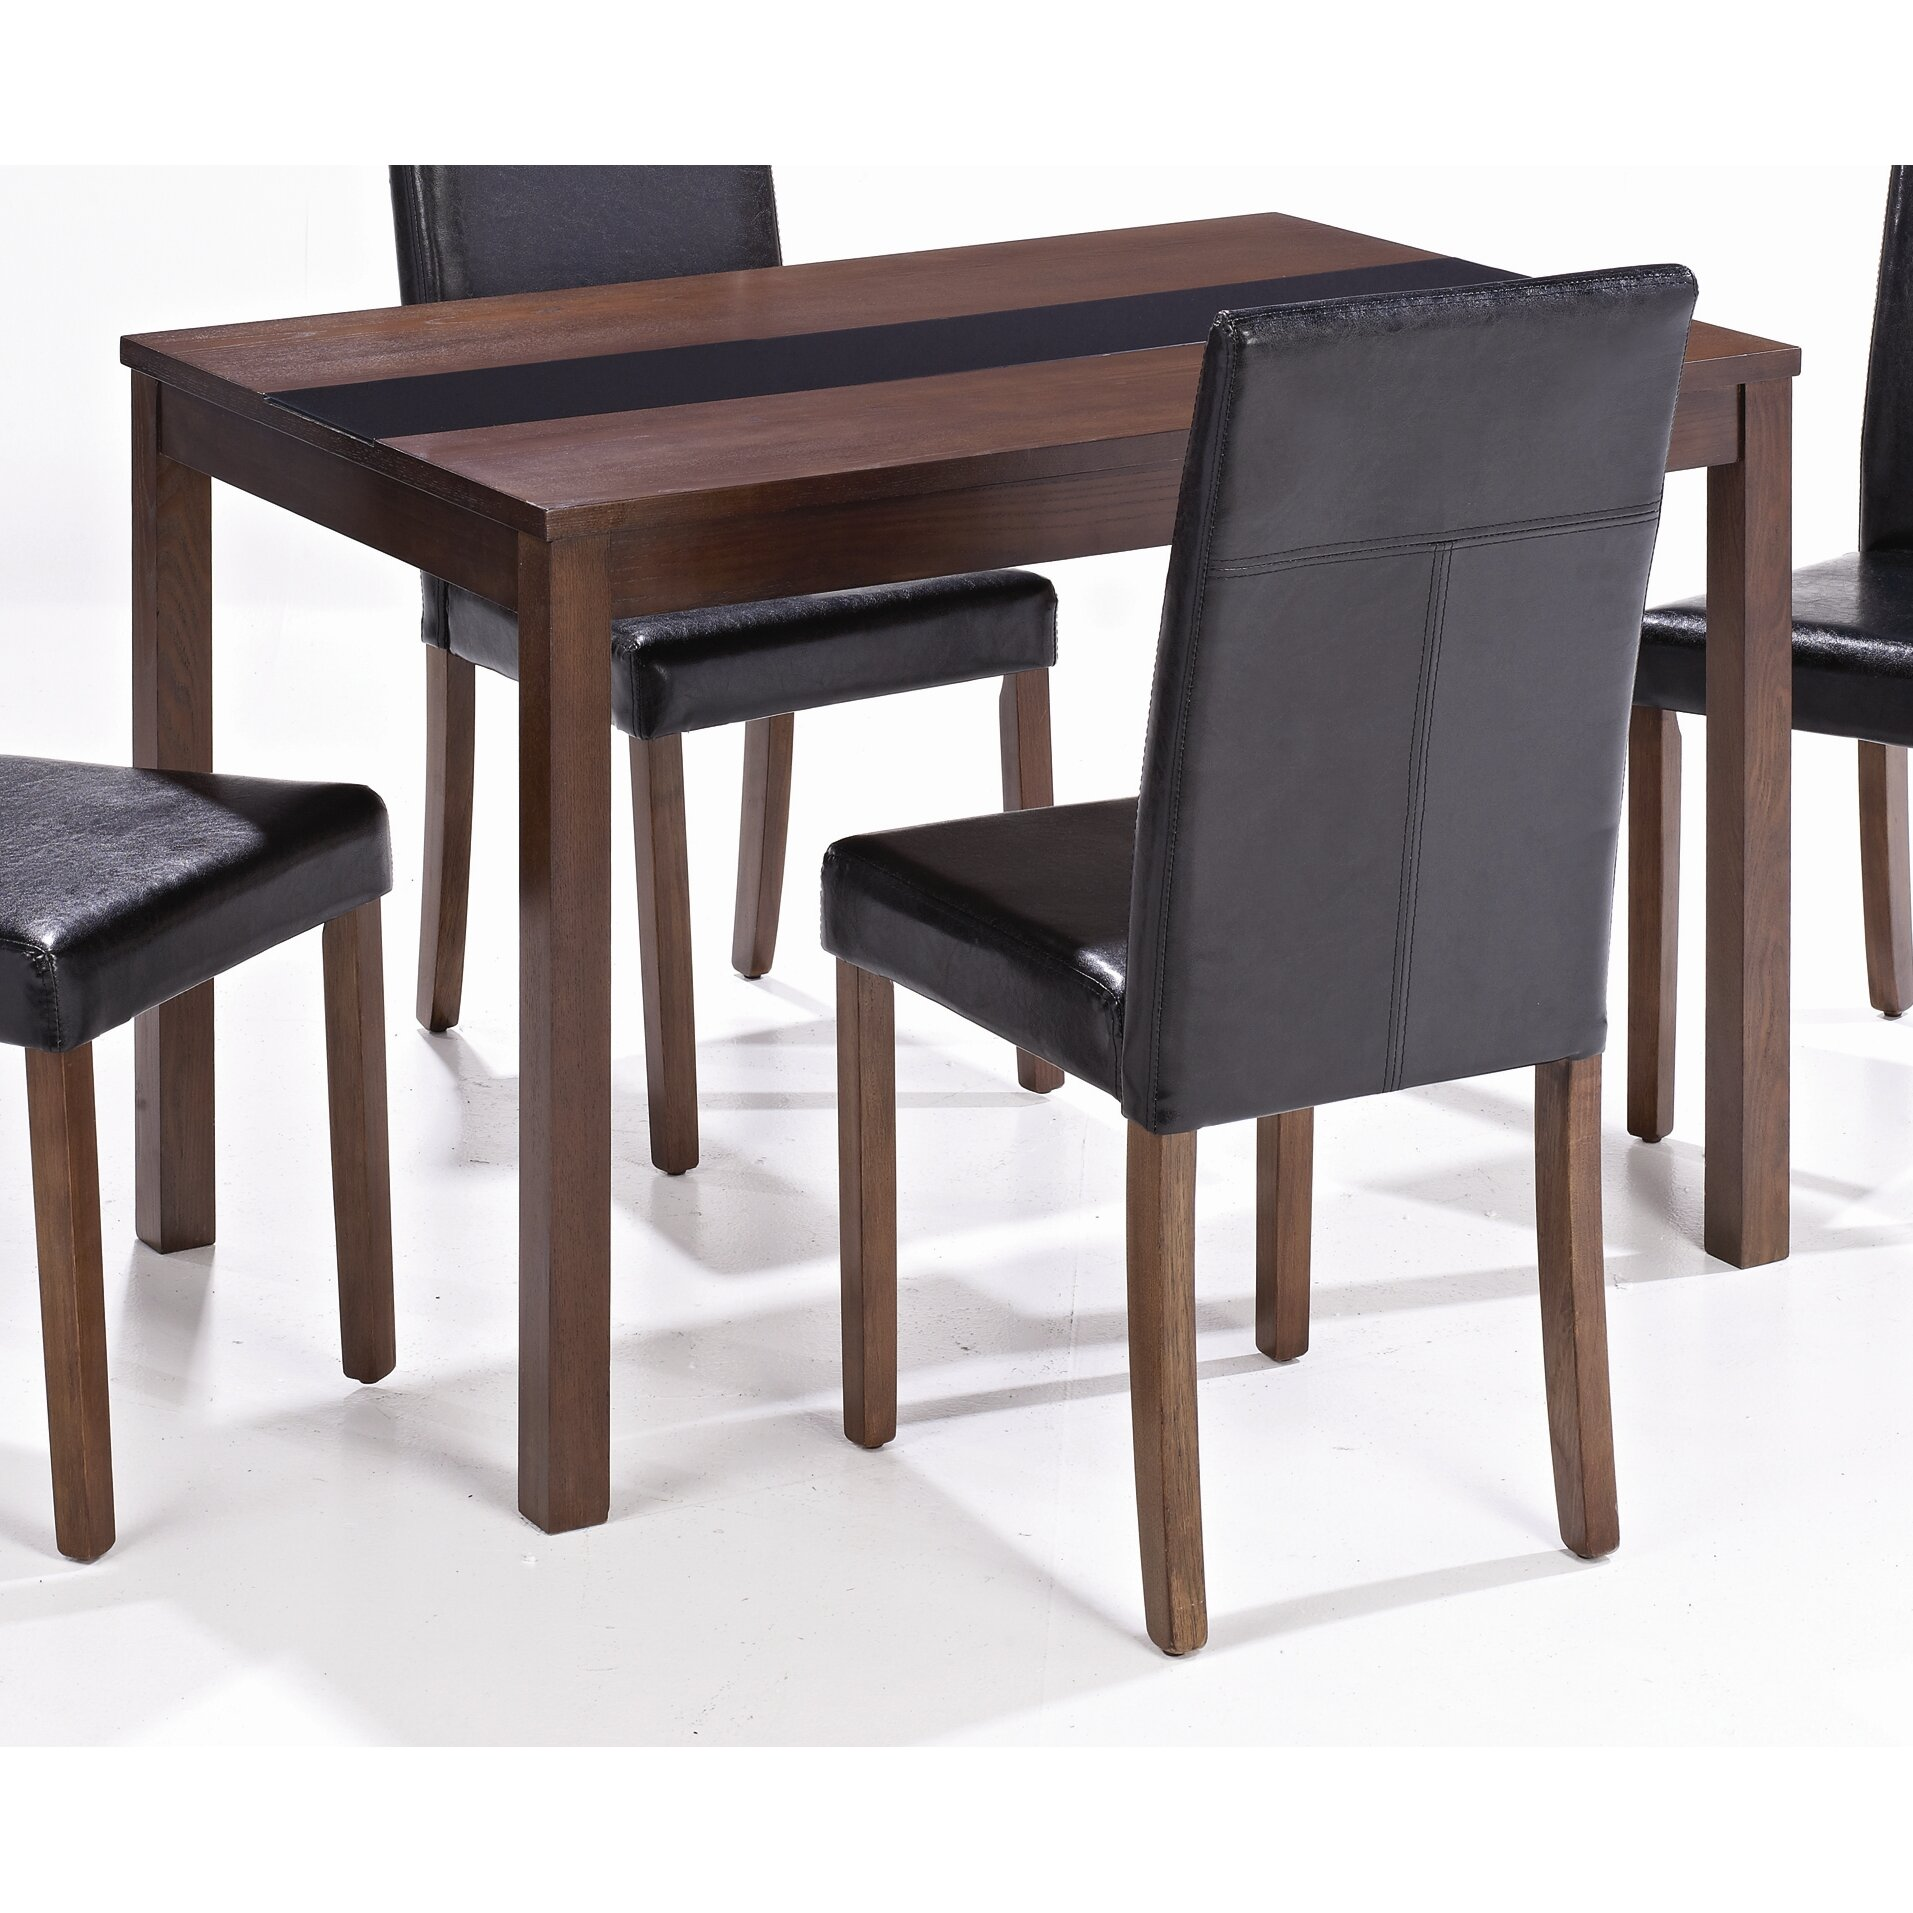 Home Zone Furniture Ashleigh Dining Table And 4 Chairs Reviews Wayfair Uk